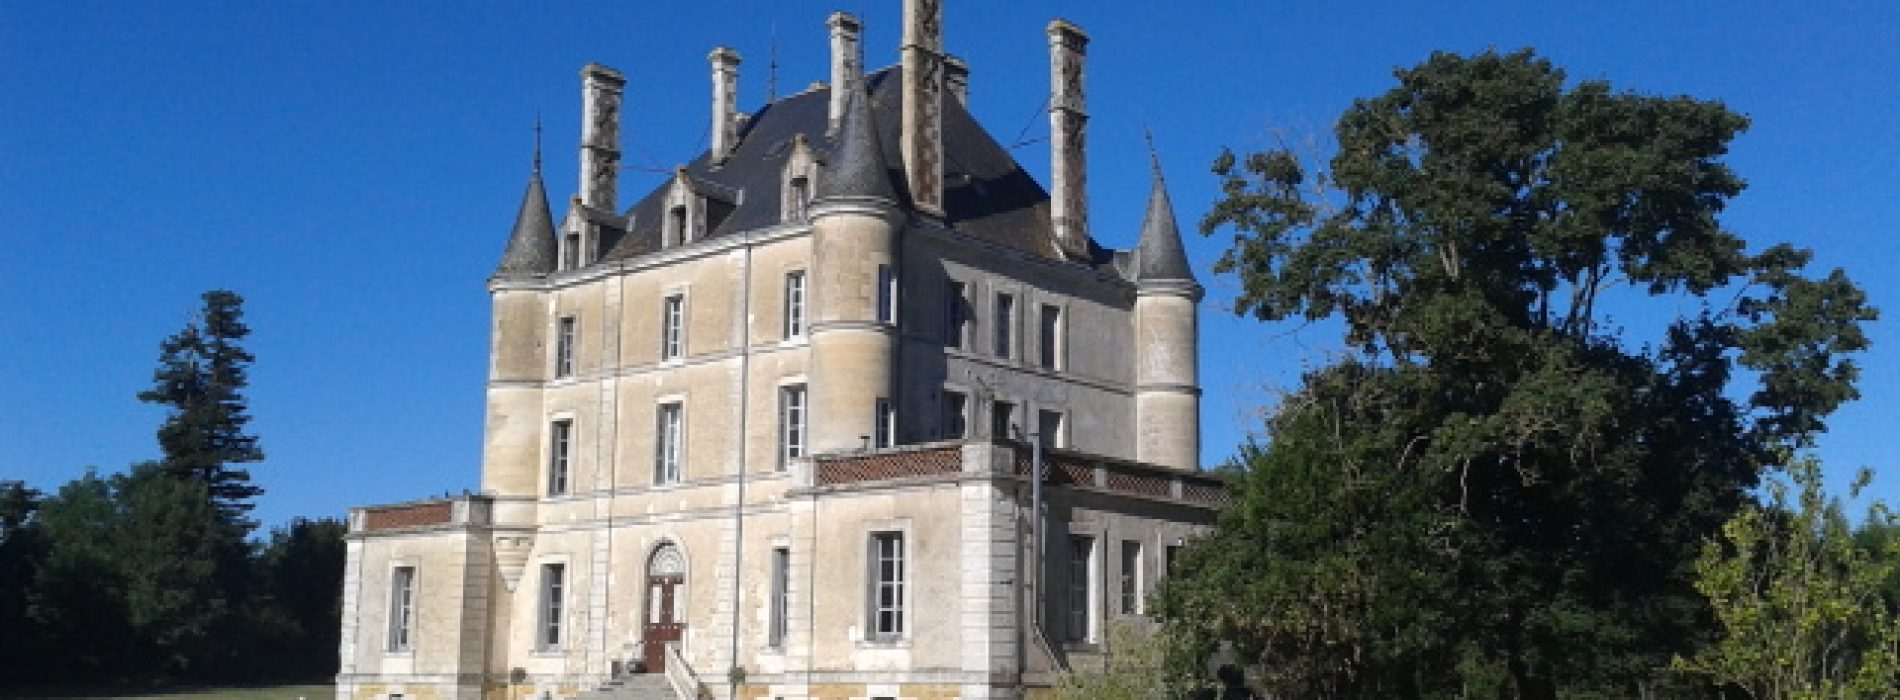 "The Irish ""Countess"" and Her Restored Chateau"